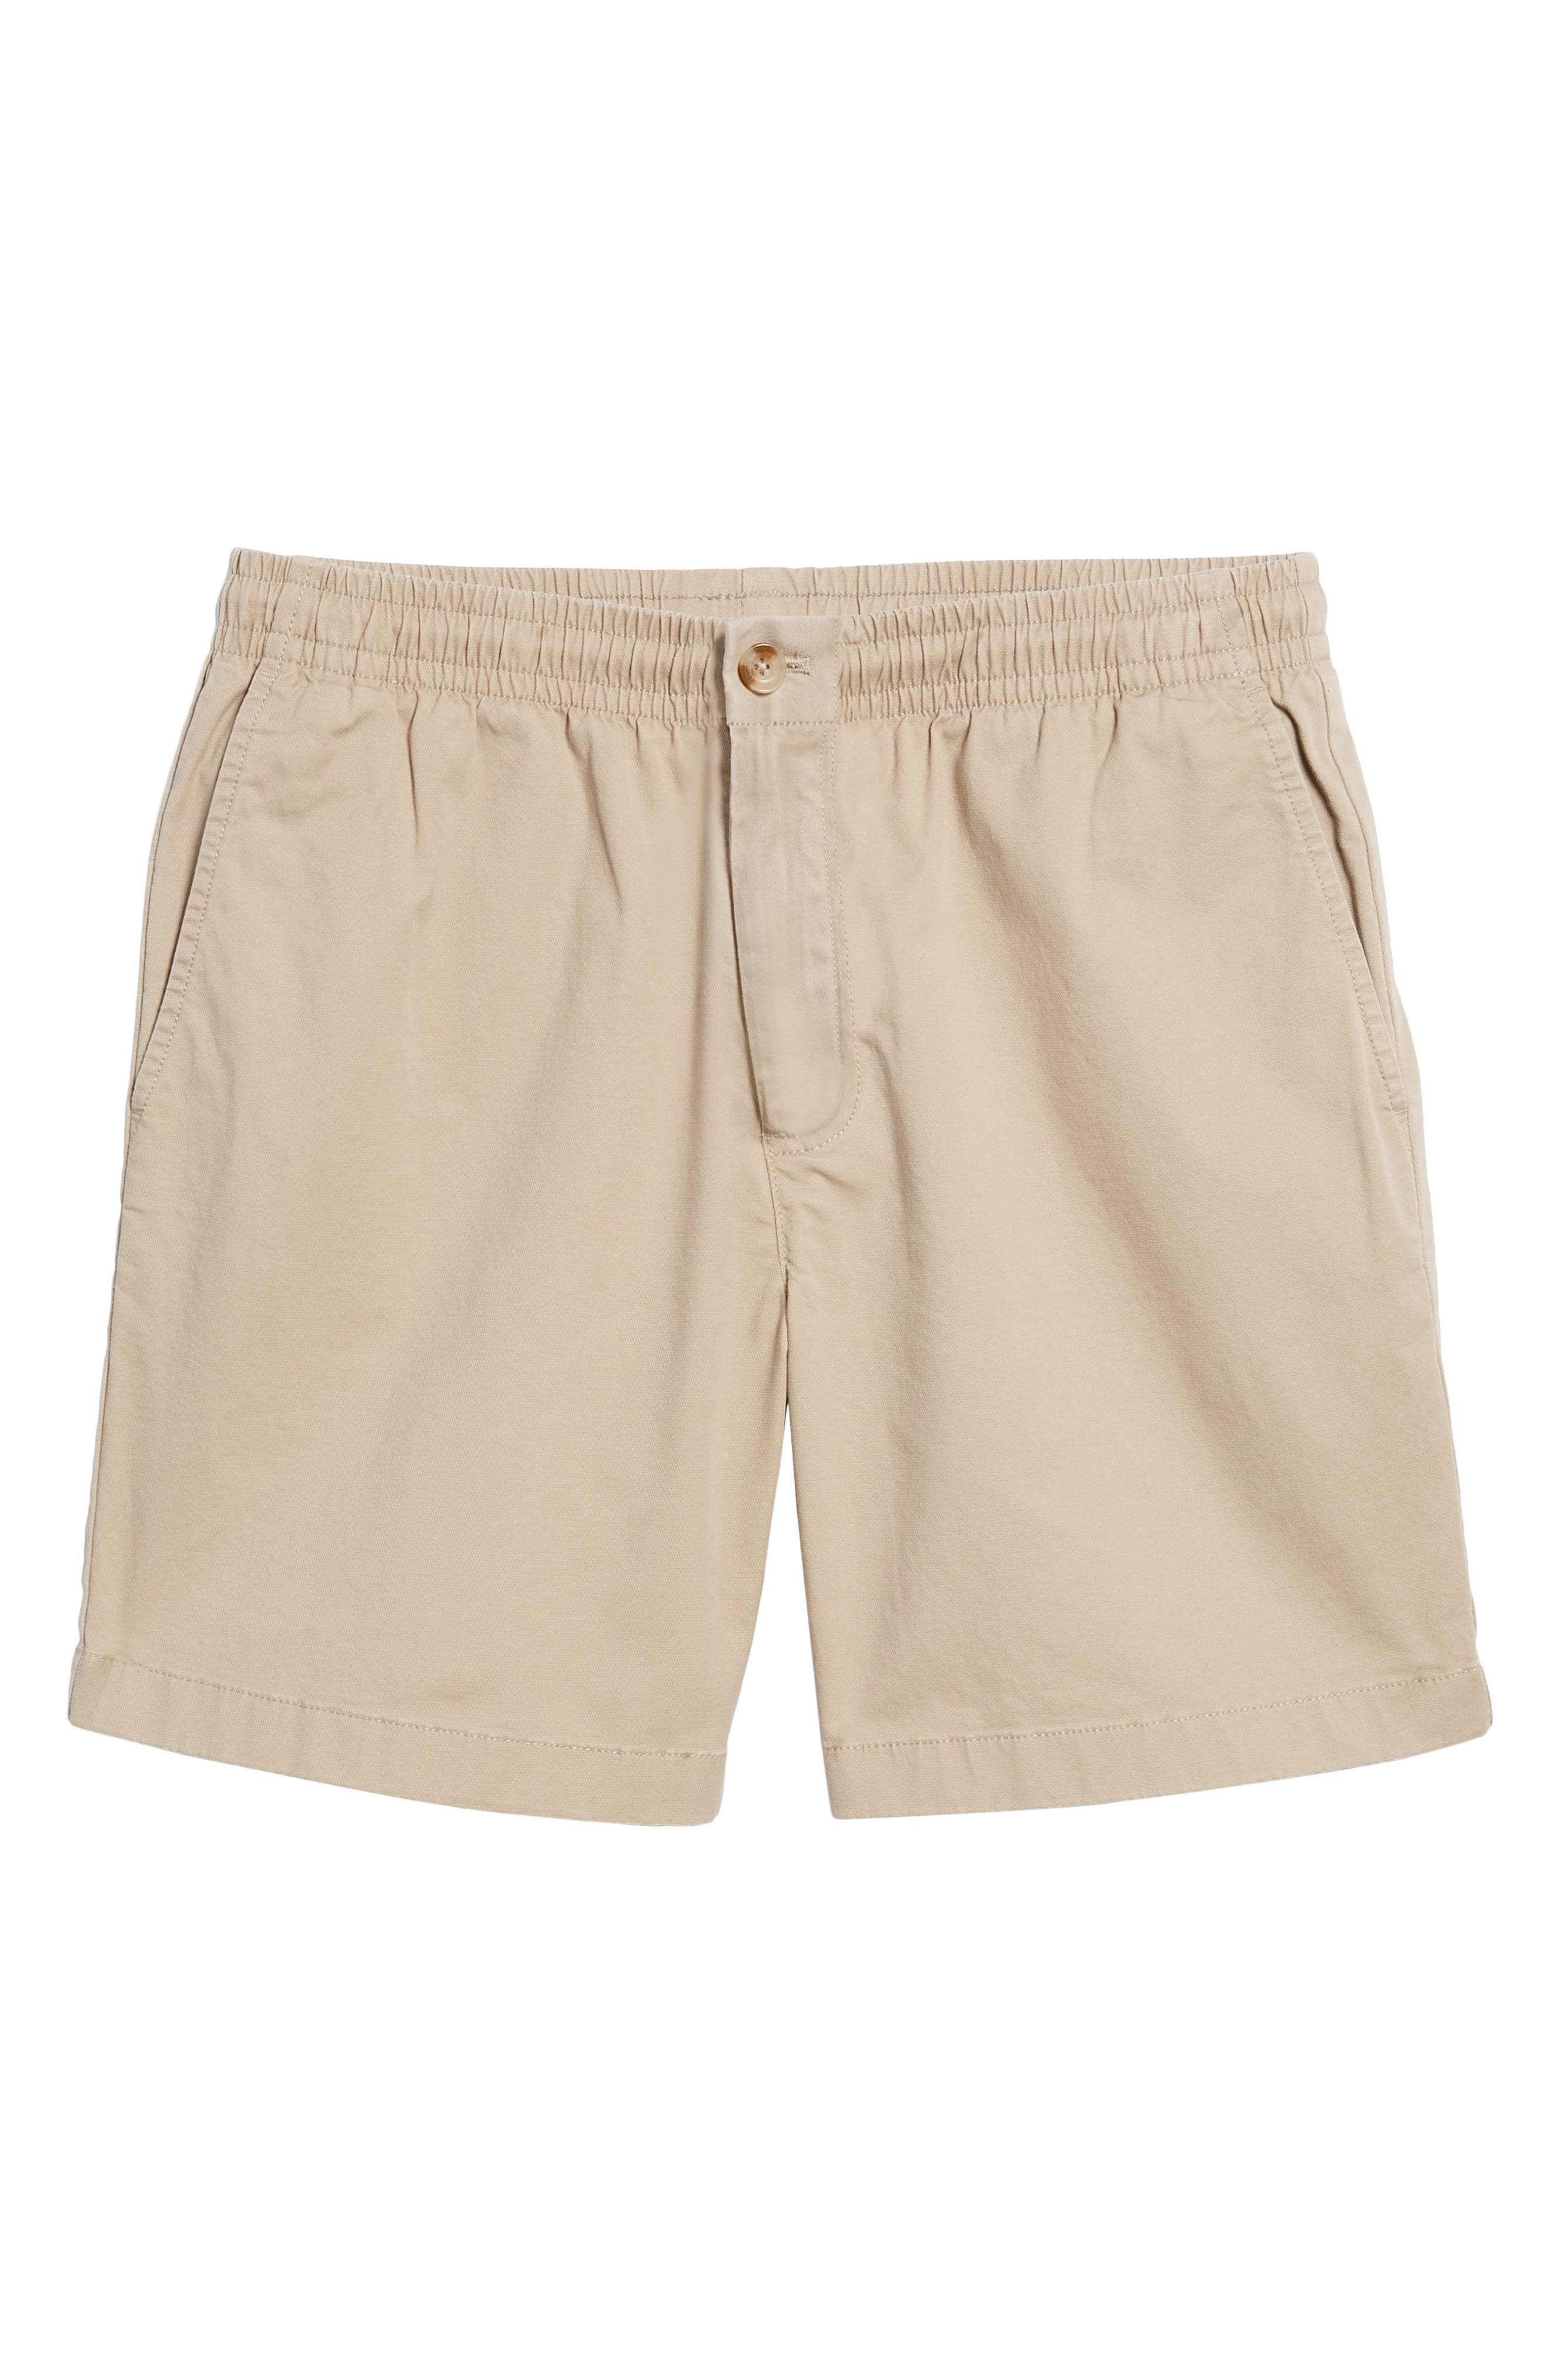 Jetty Stretch Cotton Shorts,                             Alternate thumbnail 6, color,                             250